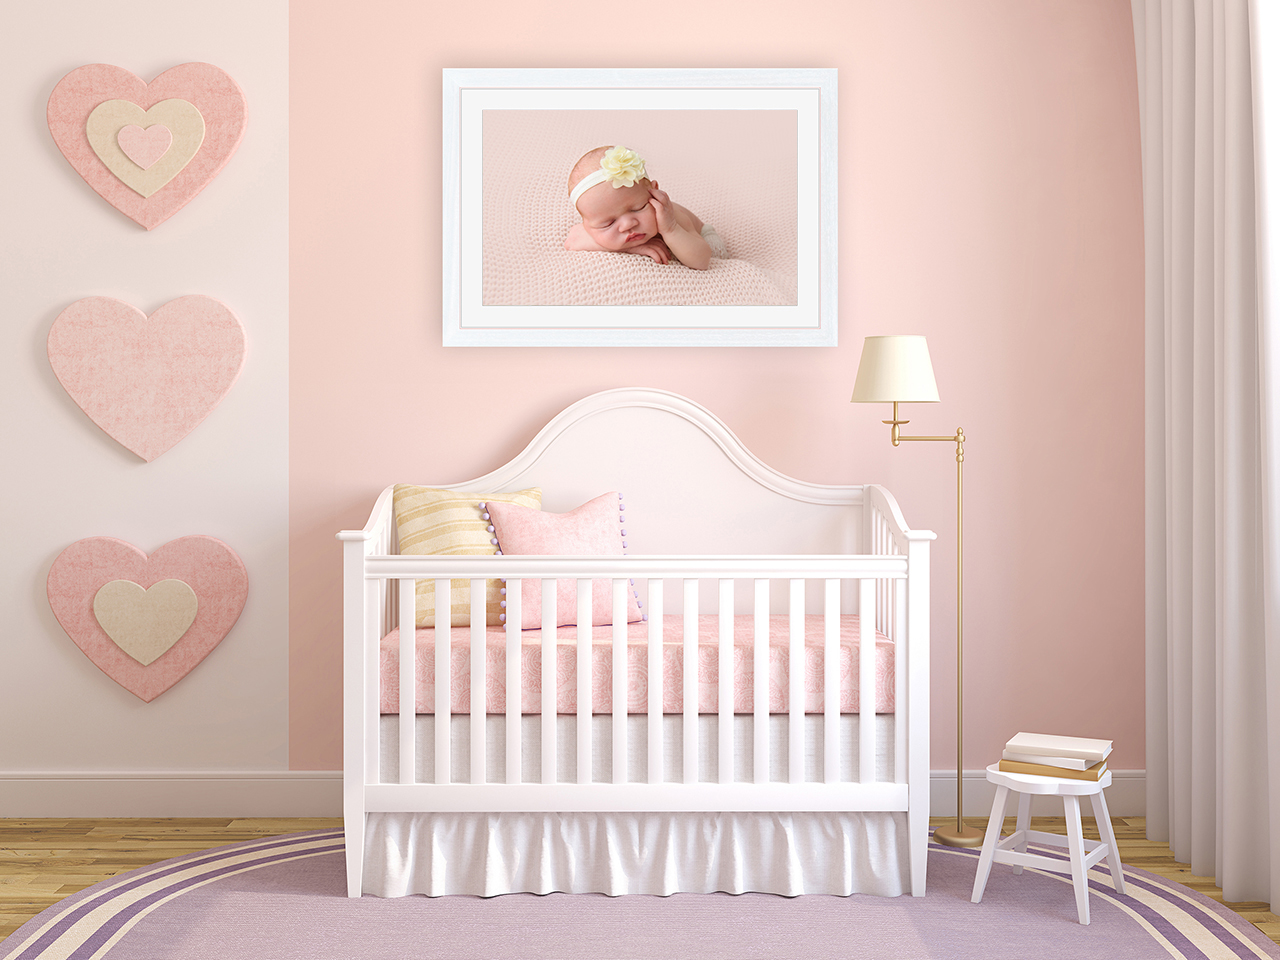 Baby girl nursery with framed photo of newborn baby girl by Babies By Jackie Photography, Market Weighton, near Pocklington, York, Beverley, Howden, Holme on Spalding Moor, Hull, Hessle and Asselby, Yorkshire UK